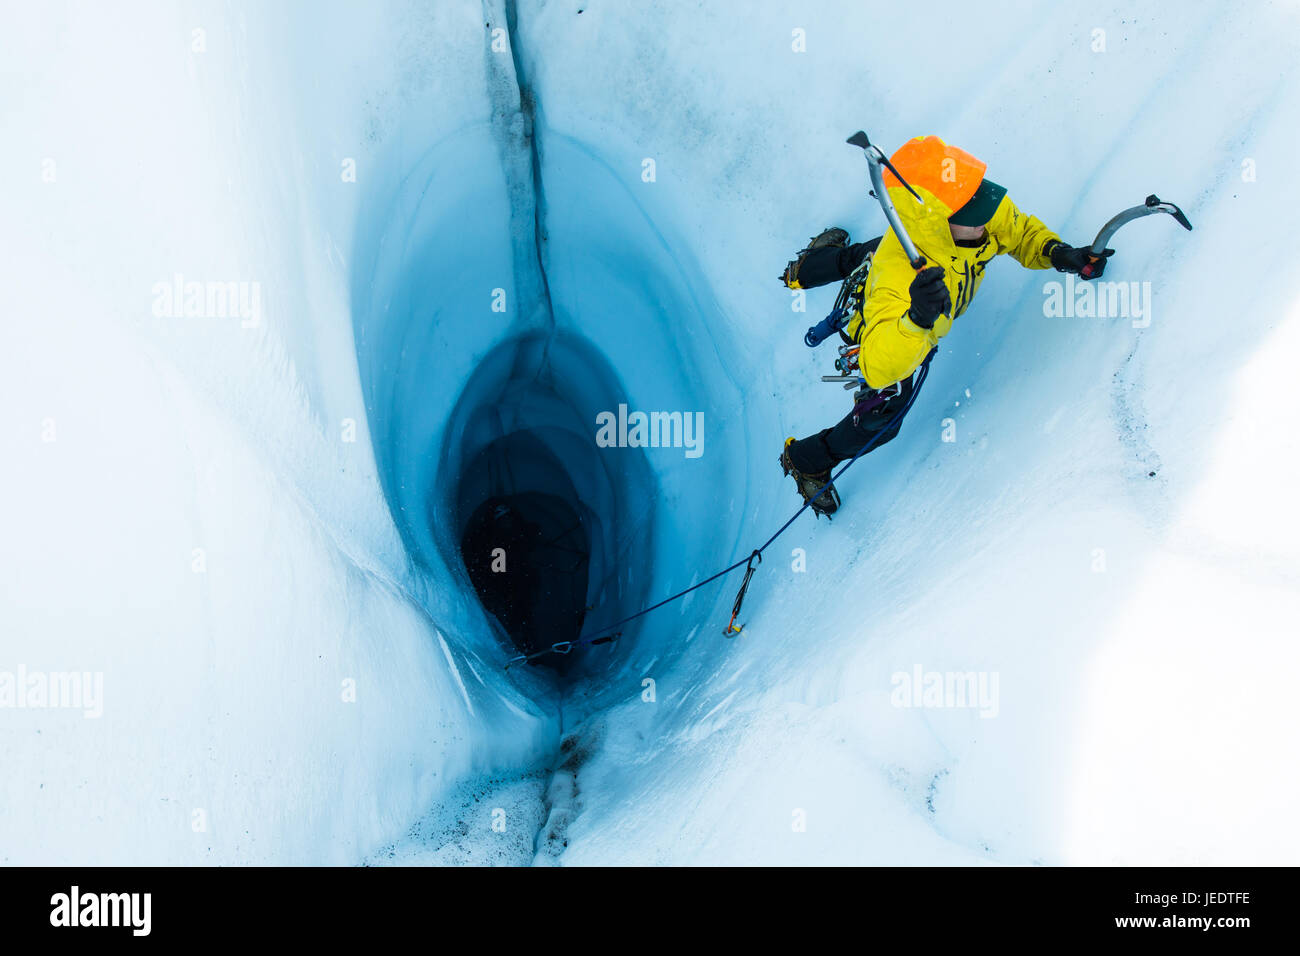 A man leading an ice climb out of a large moulin or hole in the ice of the Matanuska Glacier in Alaska. To start - Stock Image